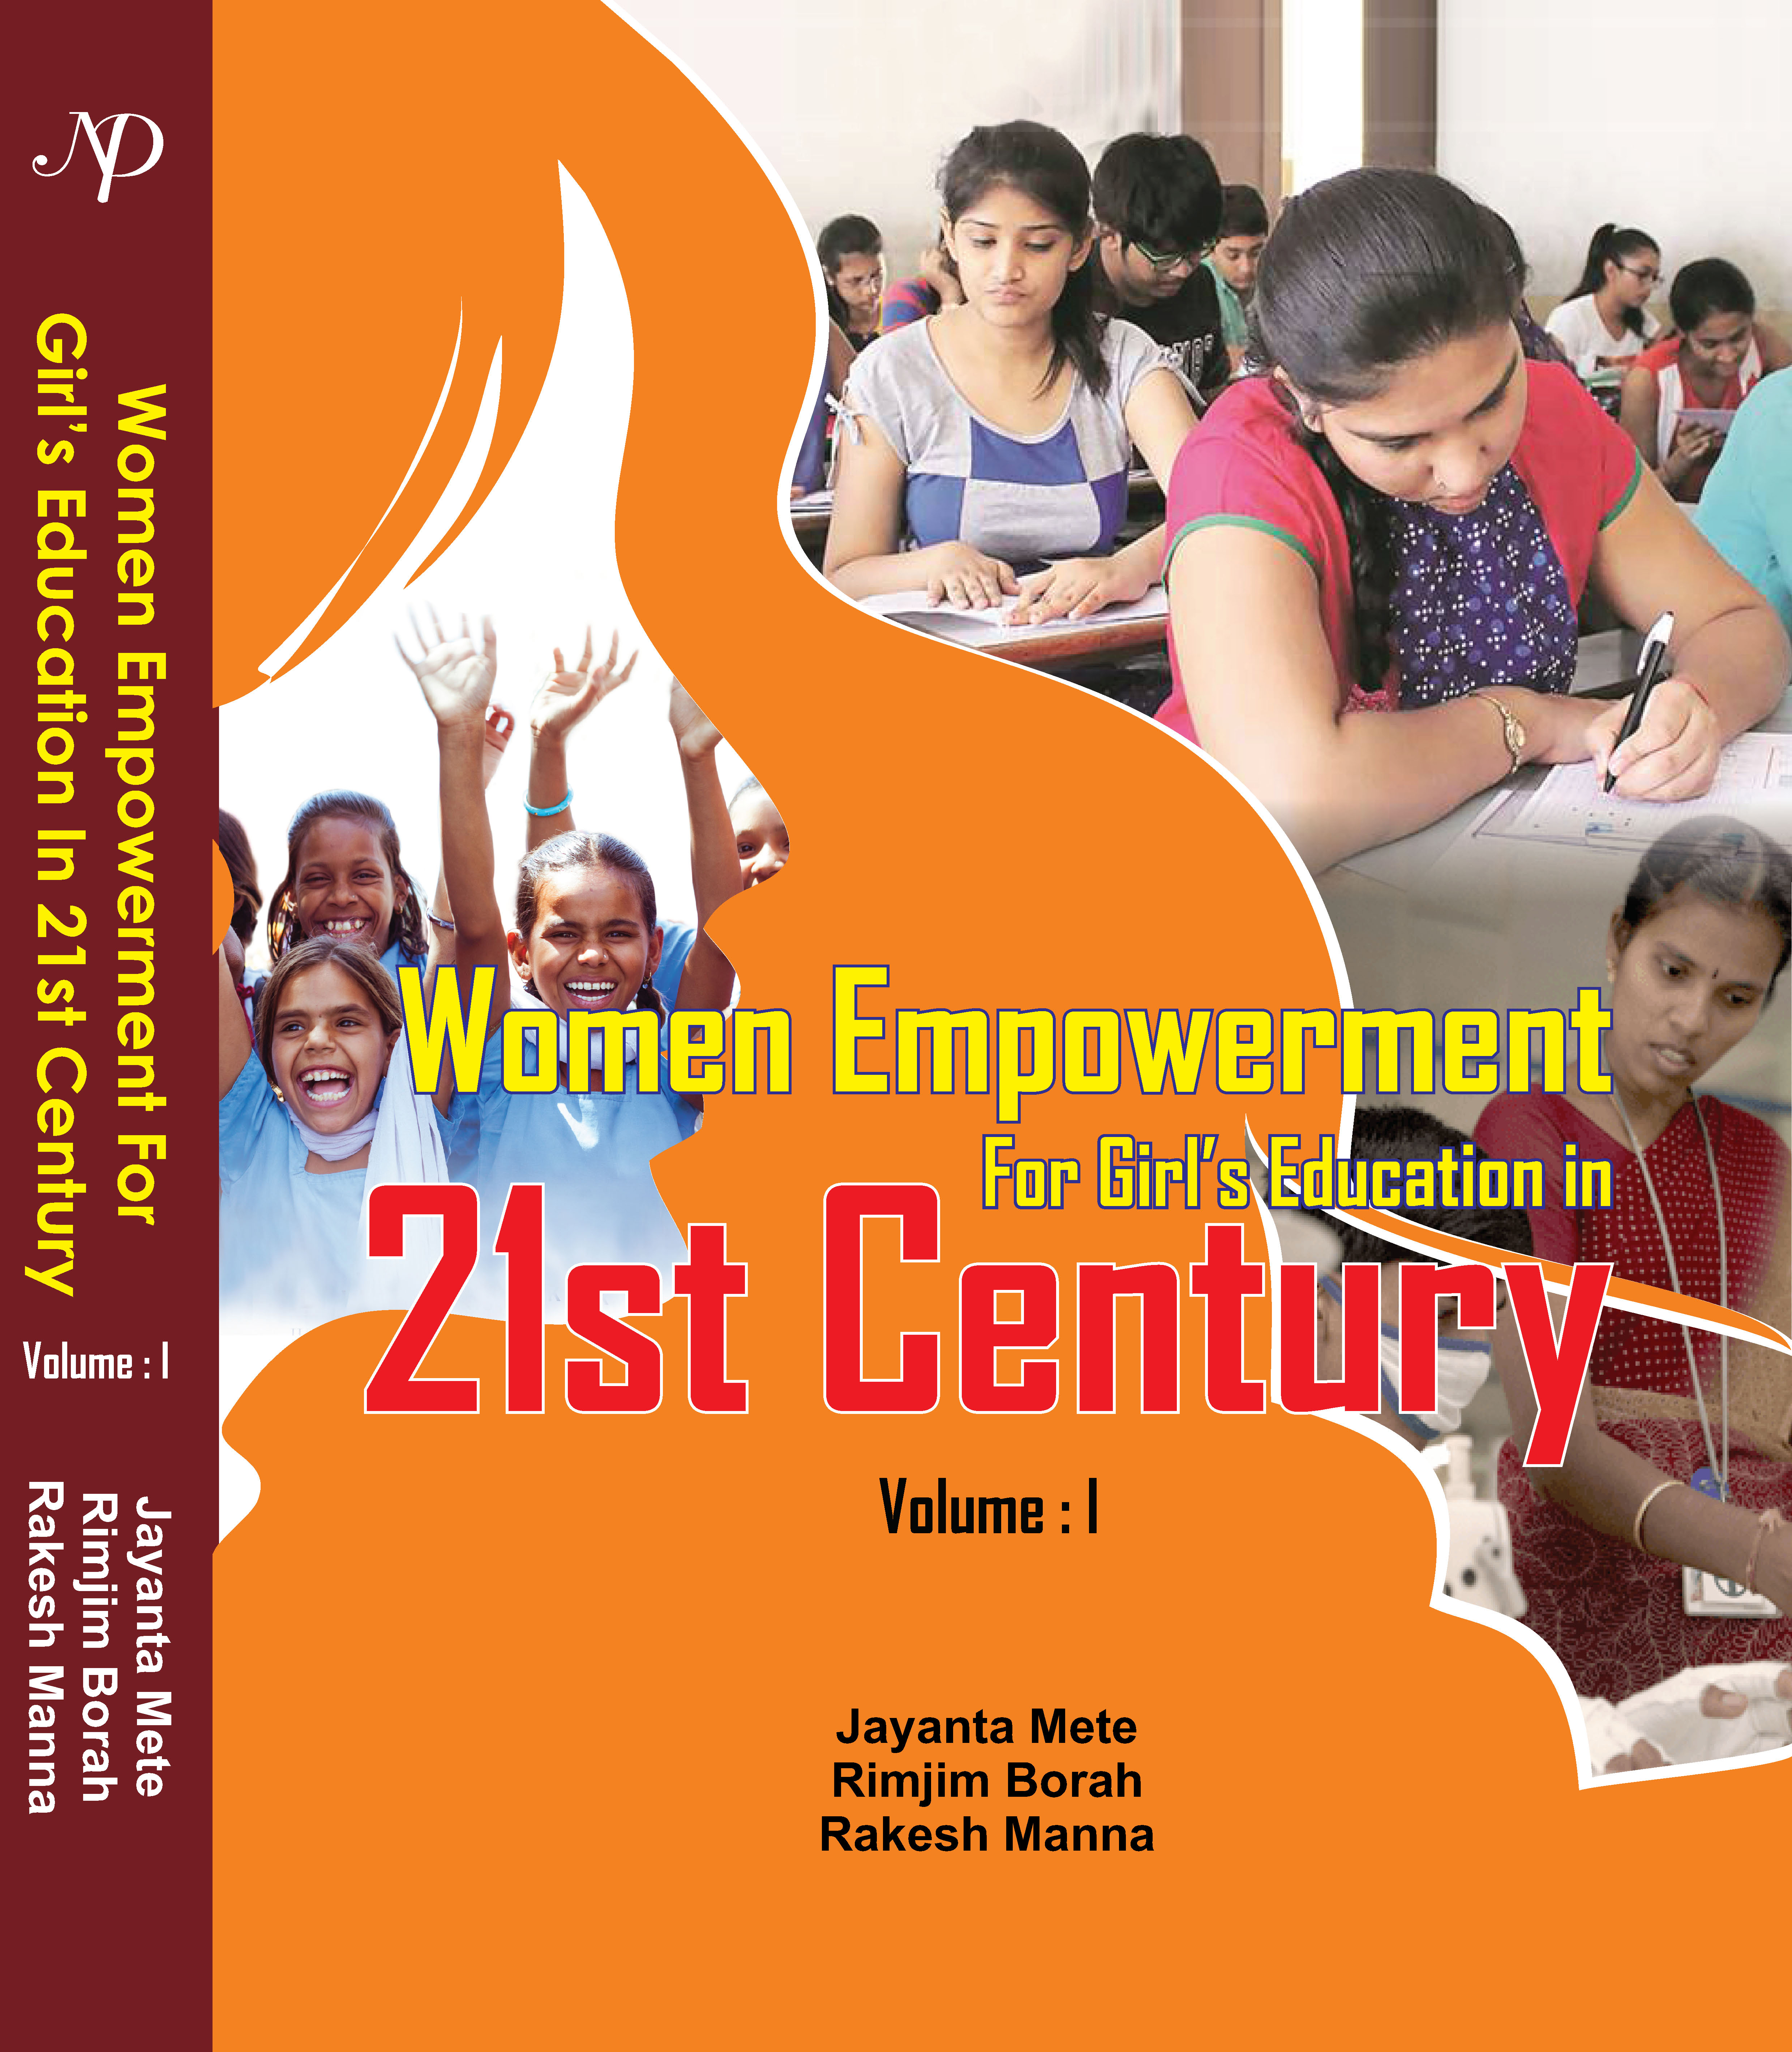 Women Empowerment For Girl's Education in 21st Century Set. 2 vol.